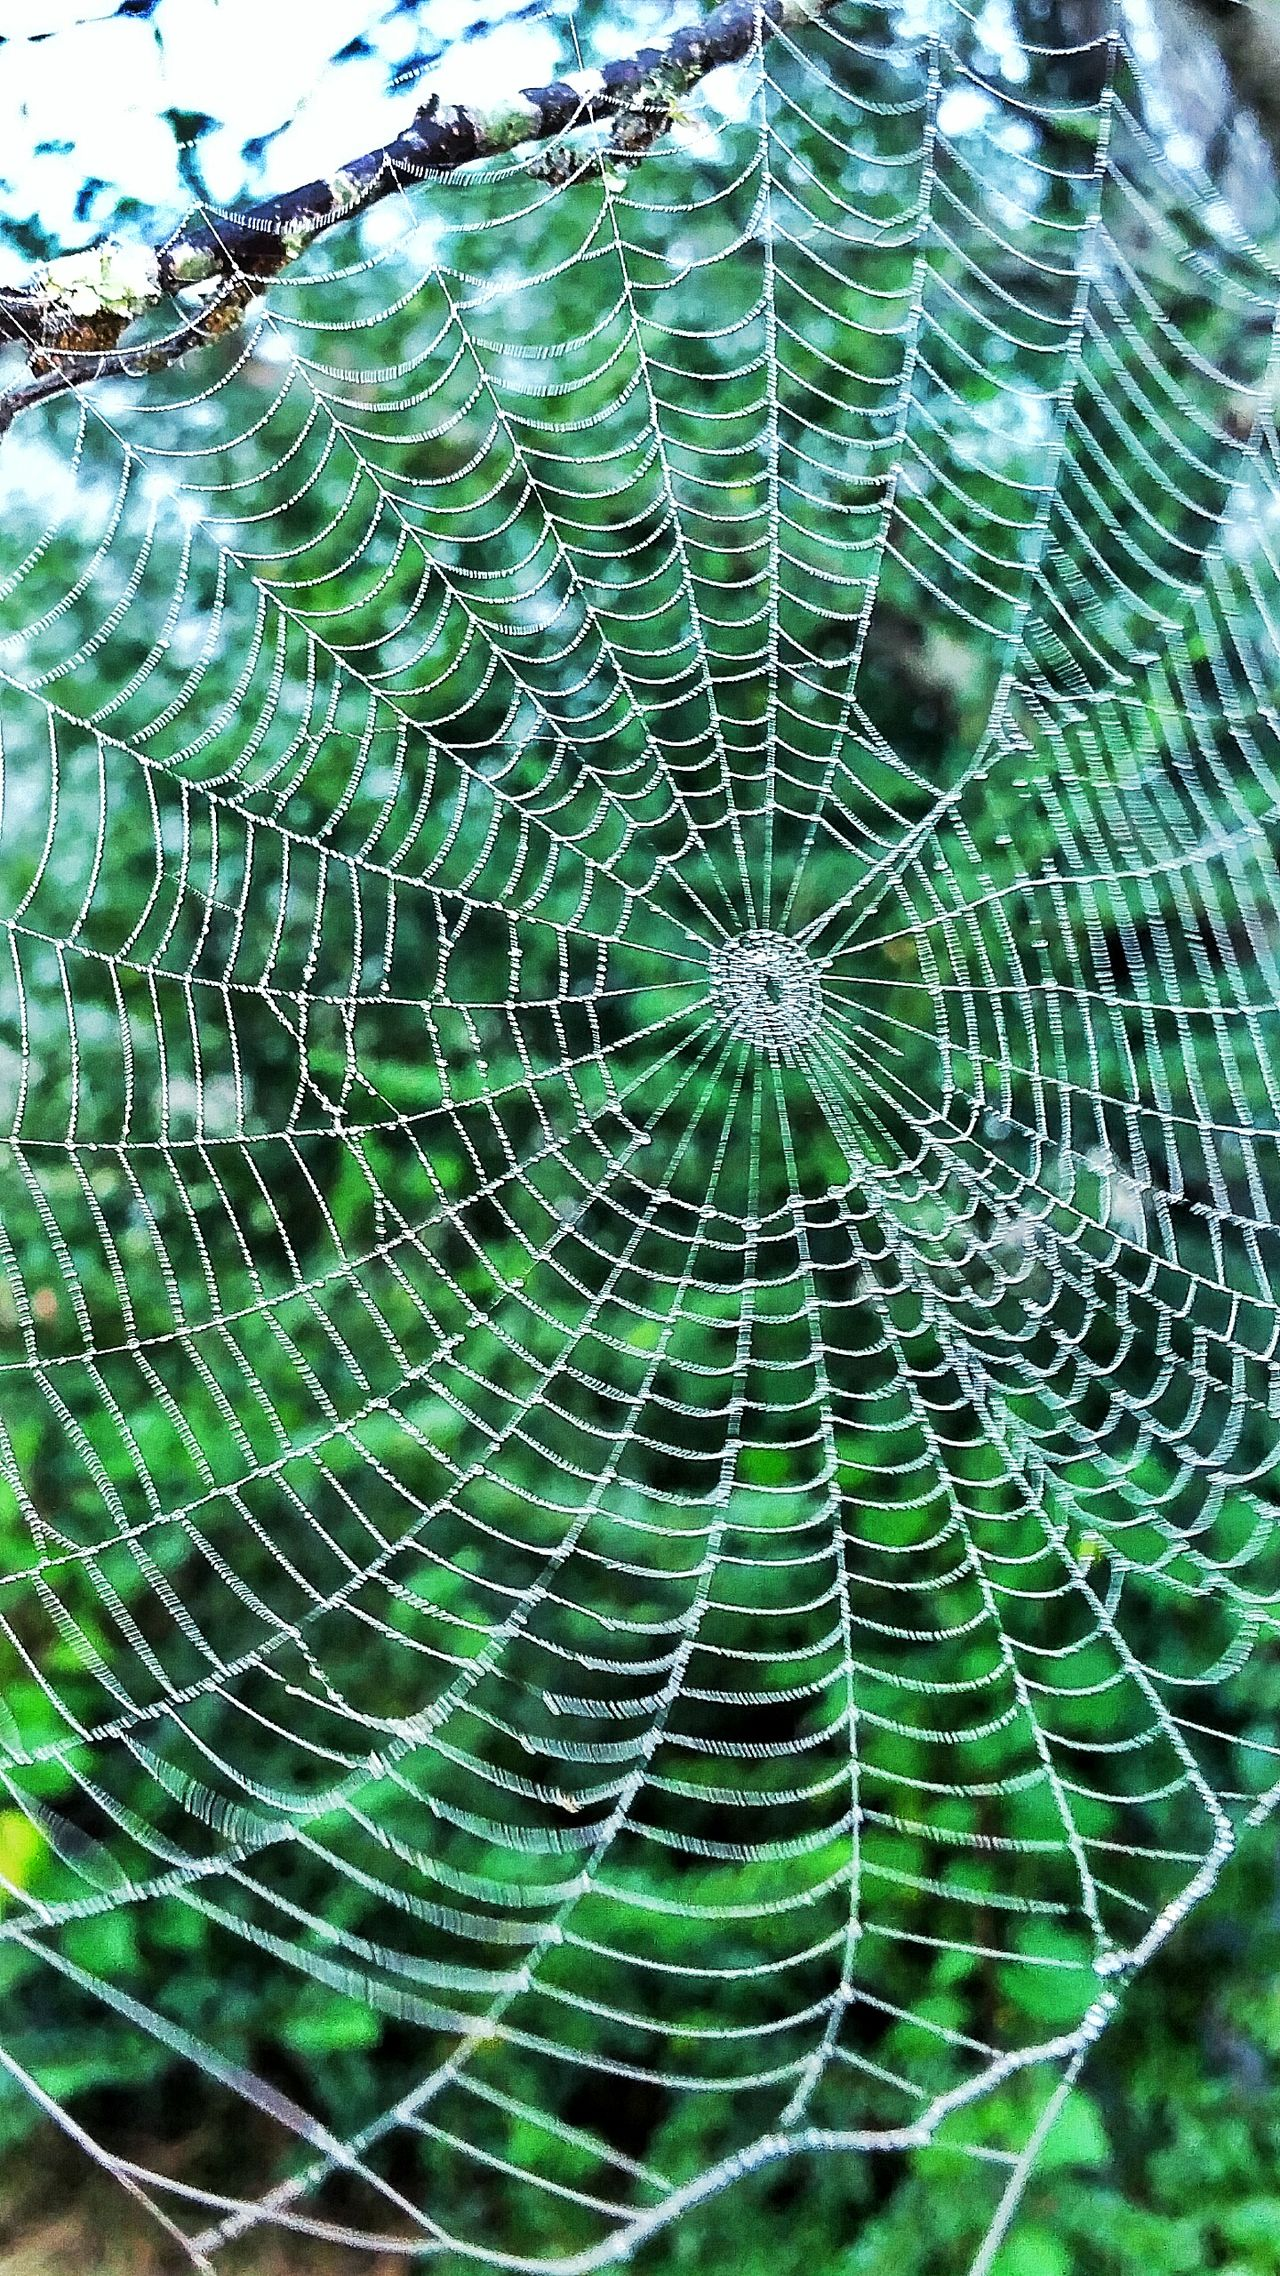 Spider Web Close-up Backgrounds Spider Full Frame Outdoors Beauty In Nature Web Fragility Nature Patterns In Nature Textured  Designs In Nature Dew Drops On Spider Web Maximum Closeness Foggy Weather Green Background Leaves Macro Insects  Dawn Wet Sunrise Textured  Beauty In Nature